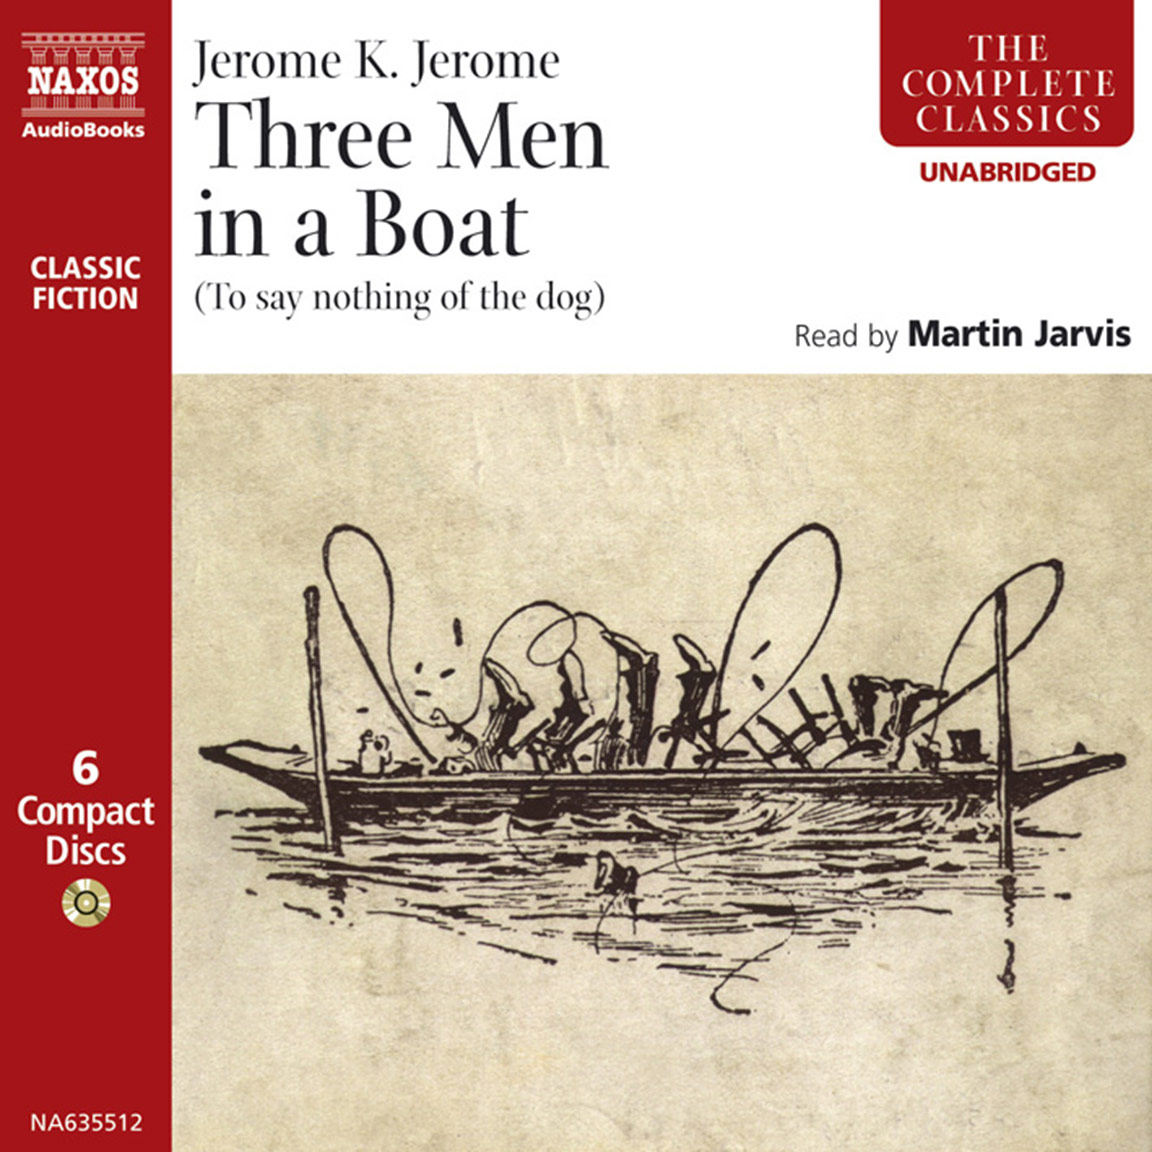 Three Men in a Boat (unabridged)